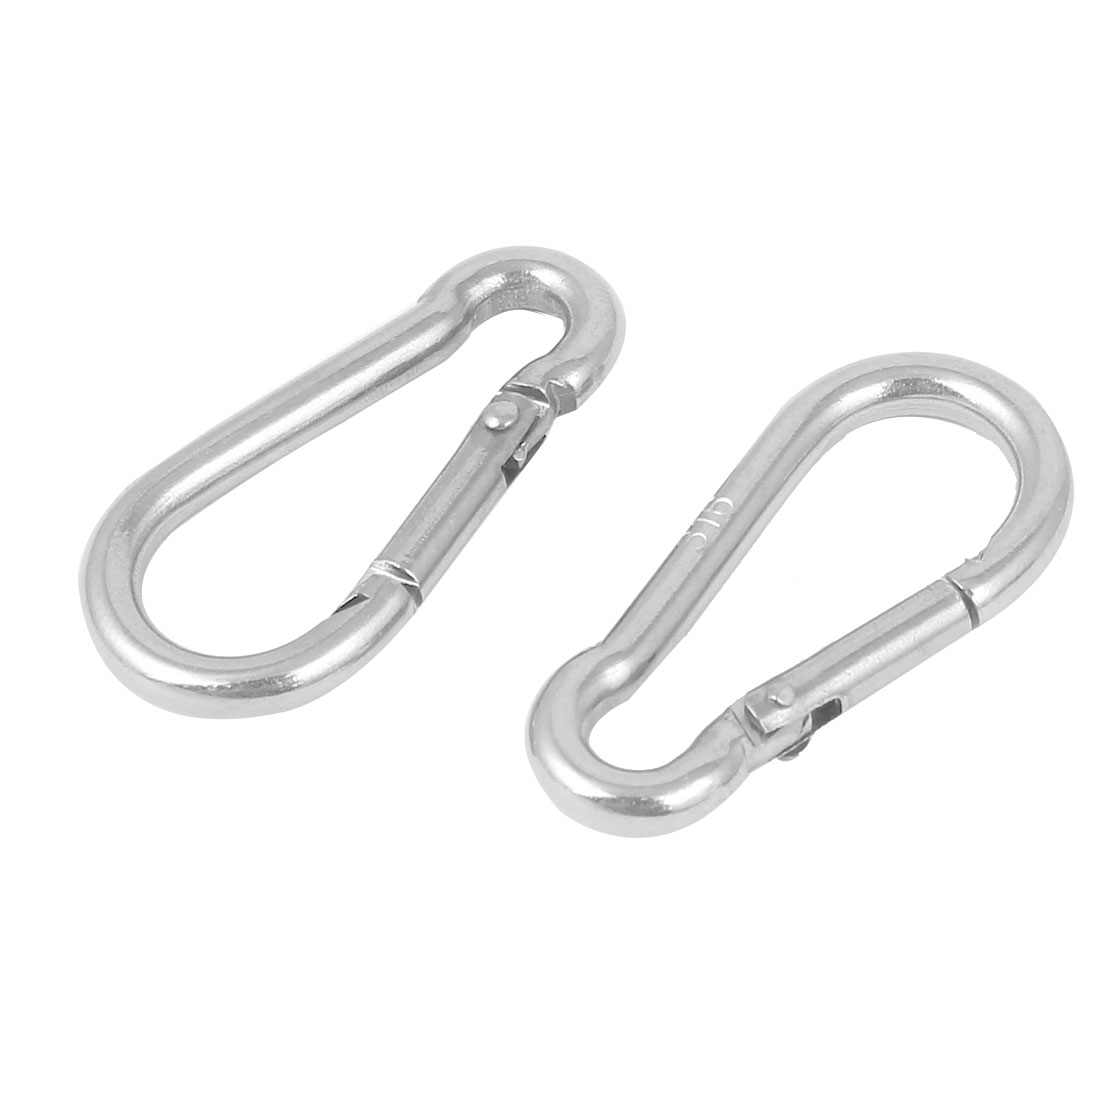 304 Stainless Steel Spring Snap Hook Carabiner Silver Tone 2PCS